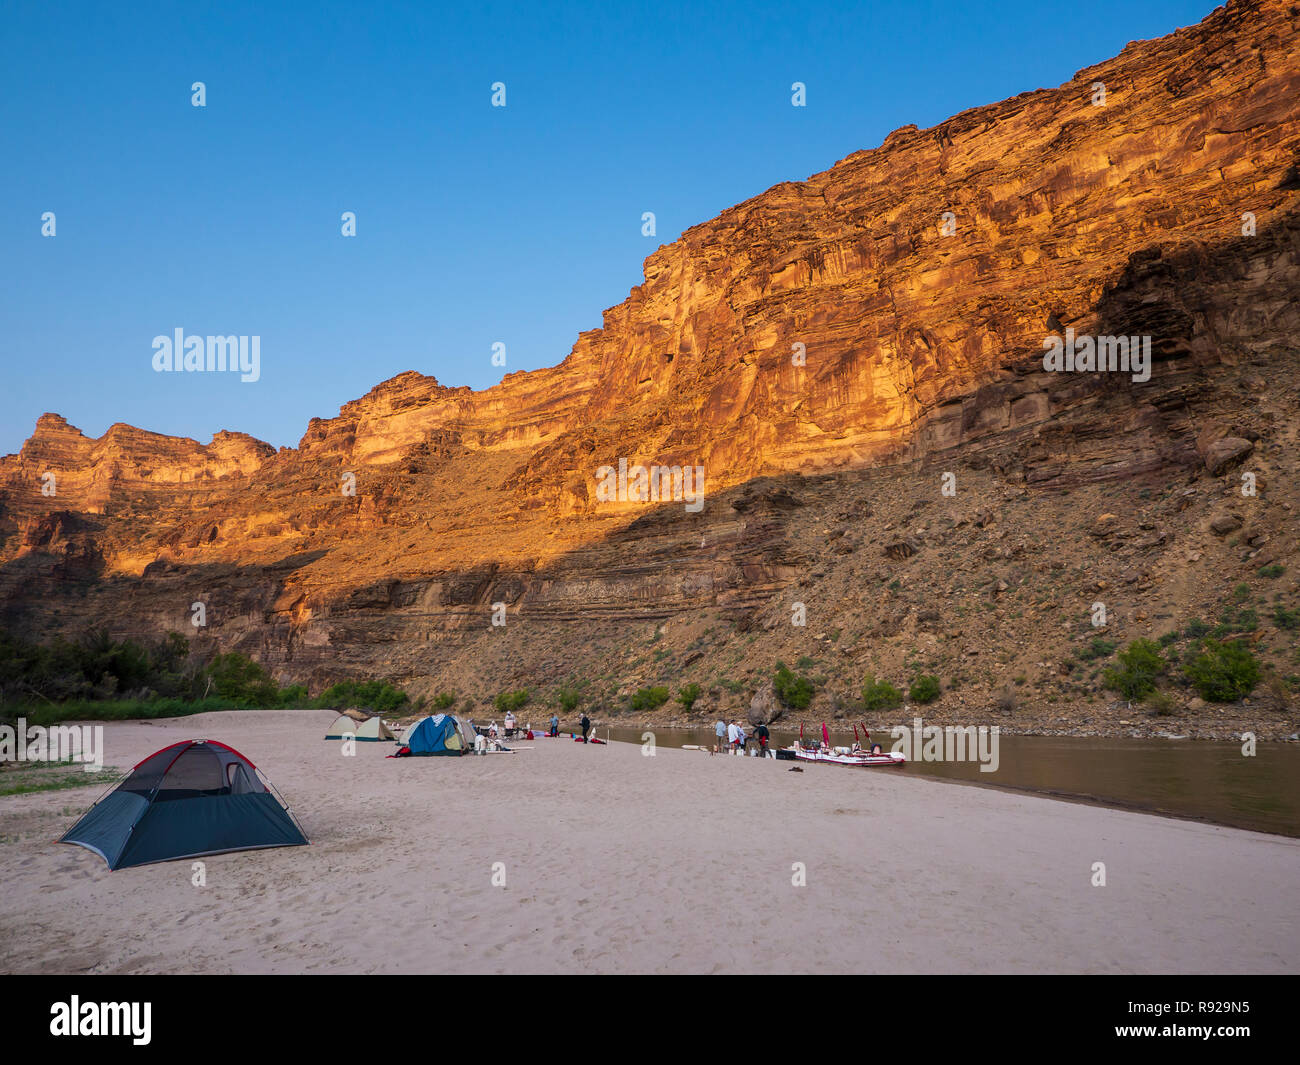 Little Rock House campsite, Desolation Canyon north of Green River, Utah. - Stock Image